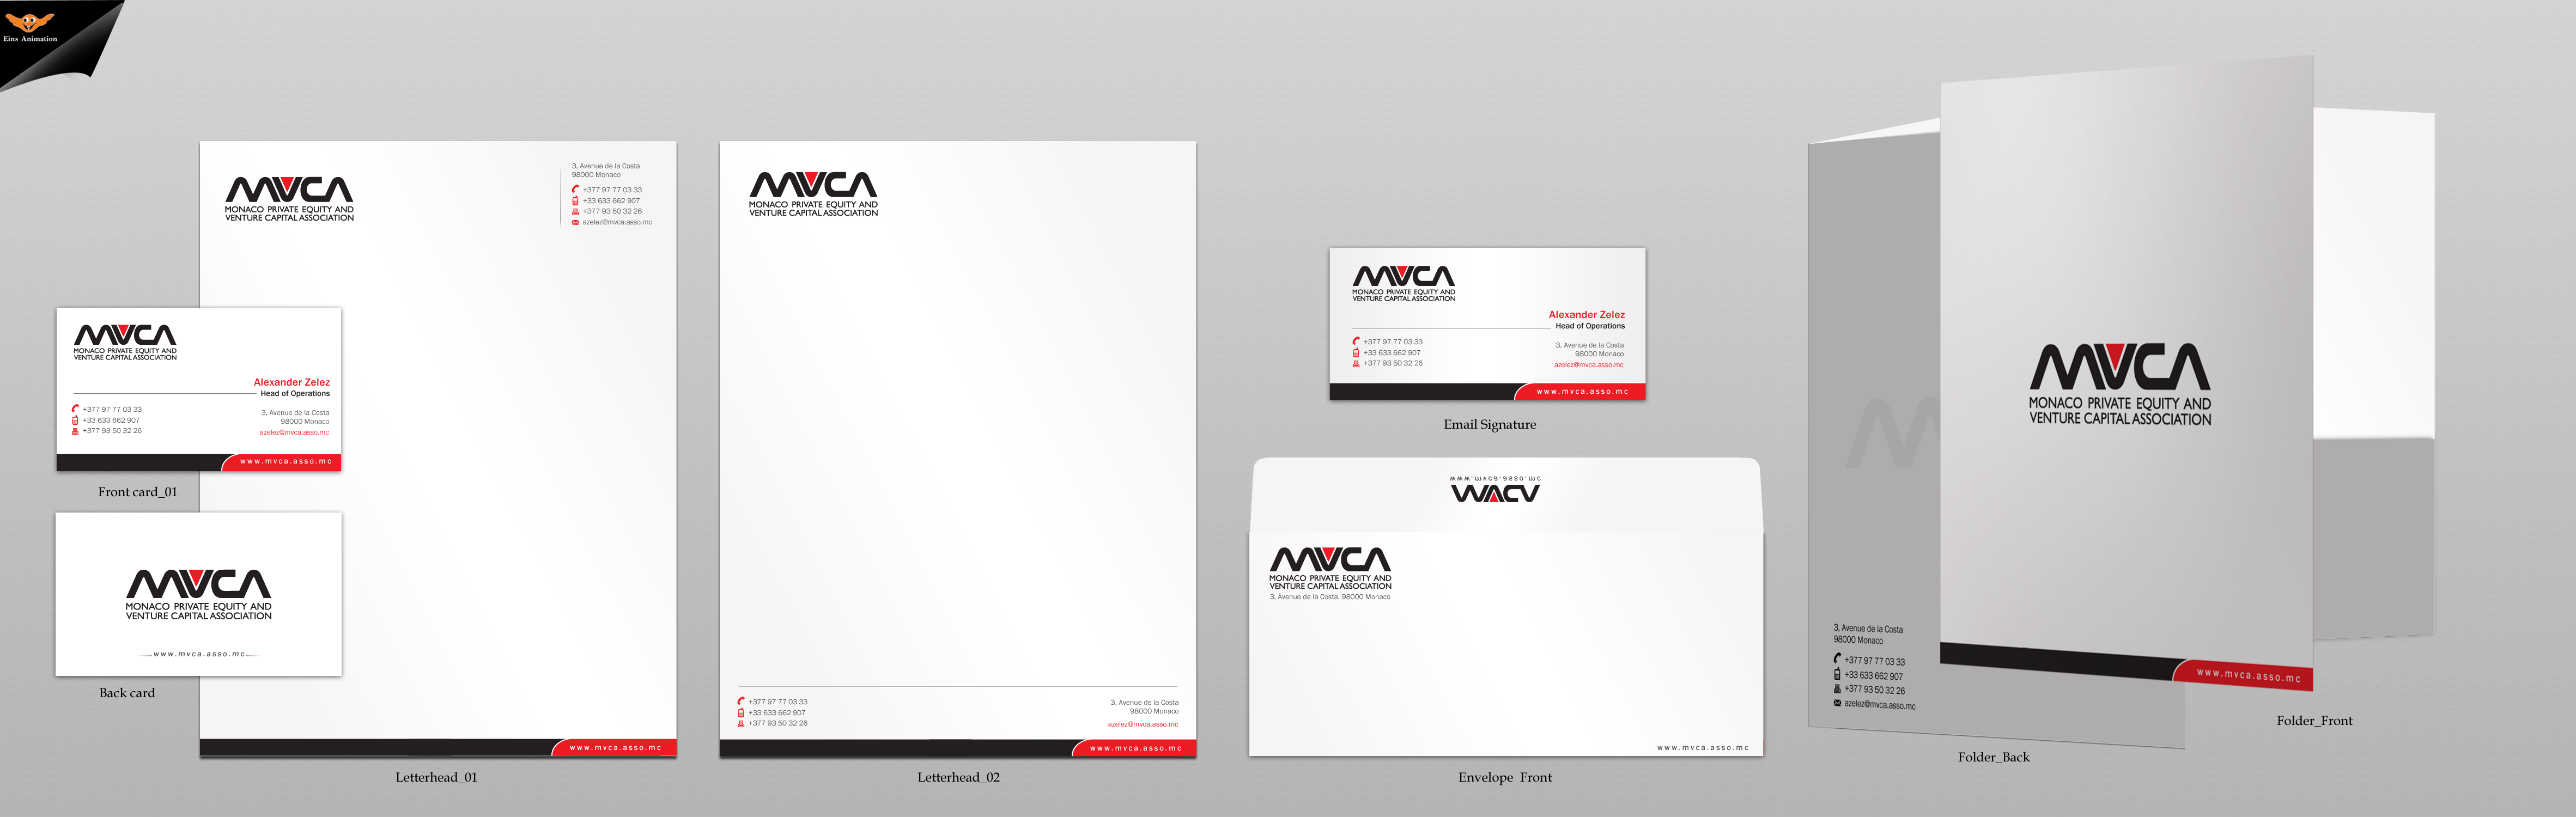 Business card, letterhead, envelope design, email footer for non-profit private equity association - Financial Services